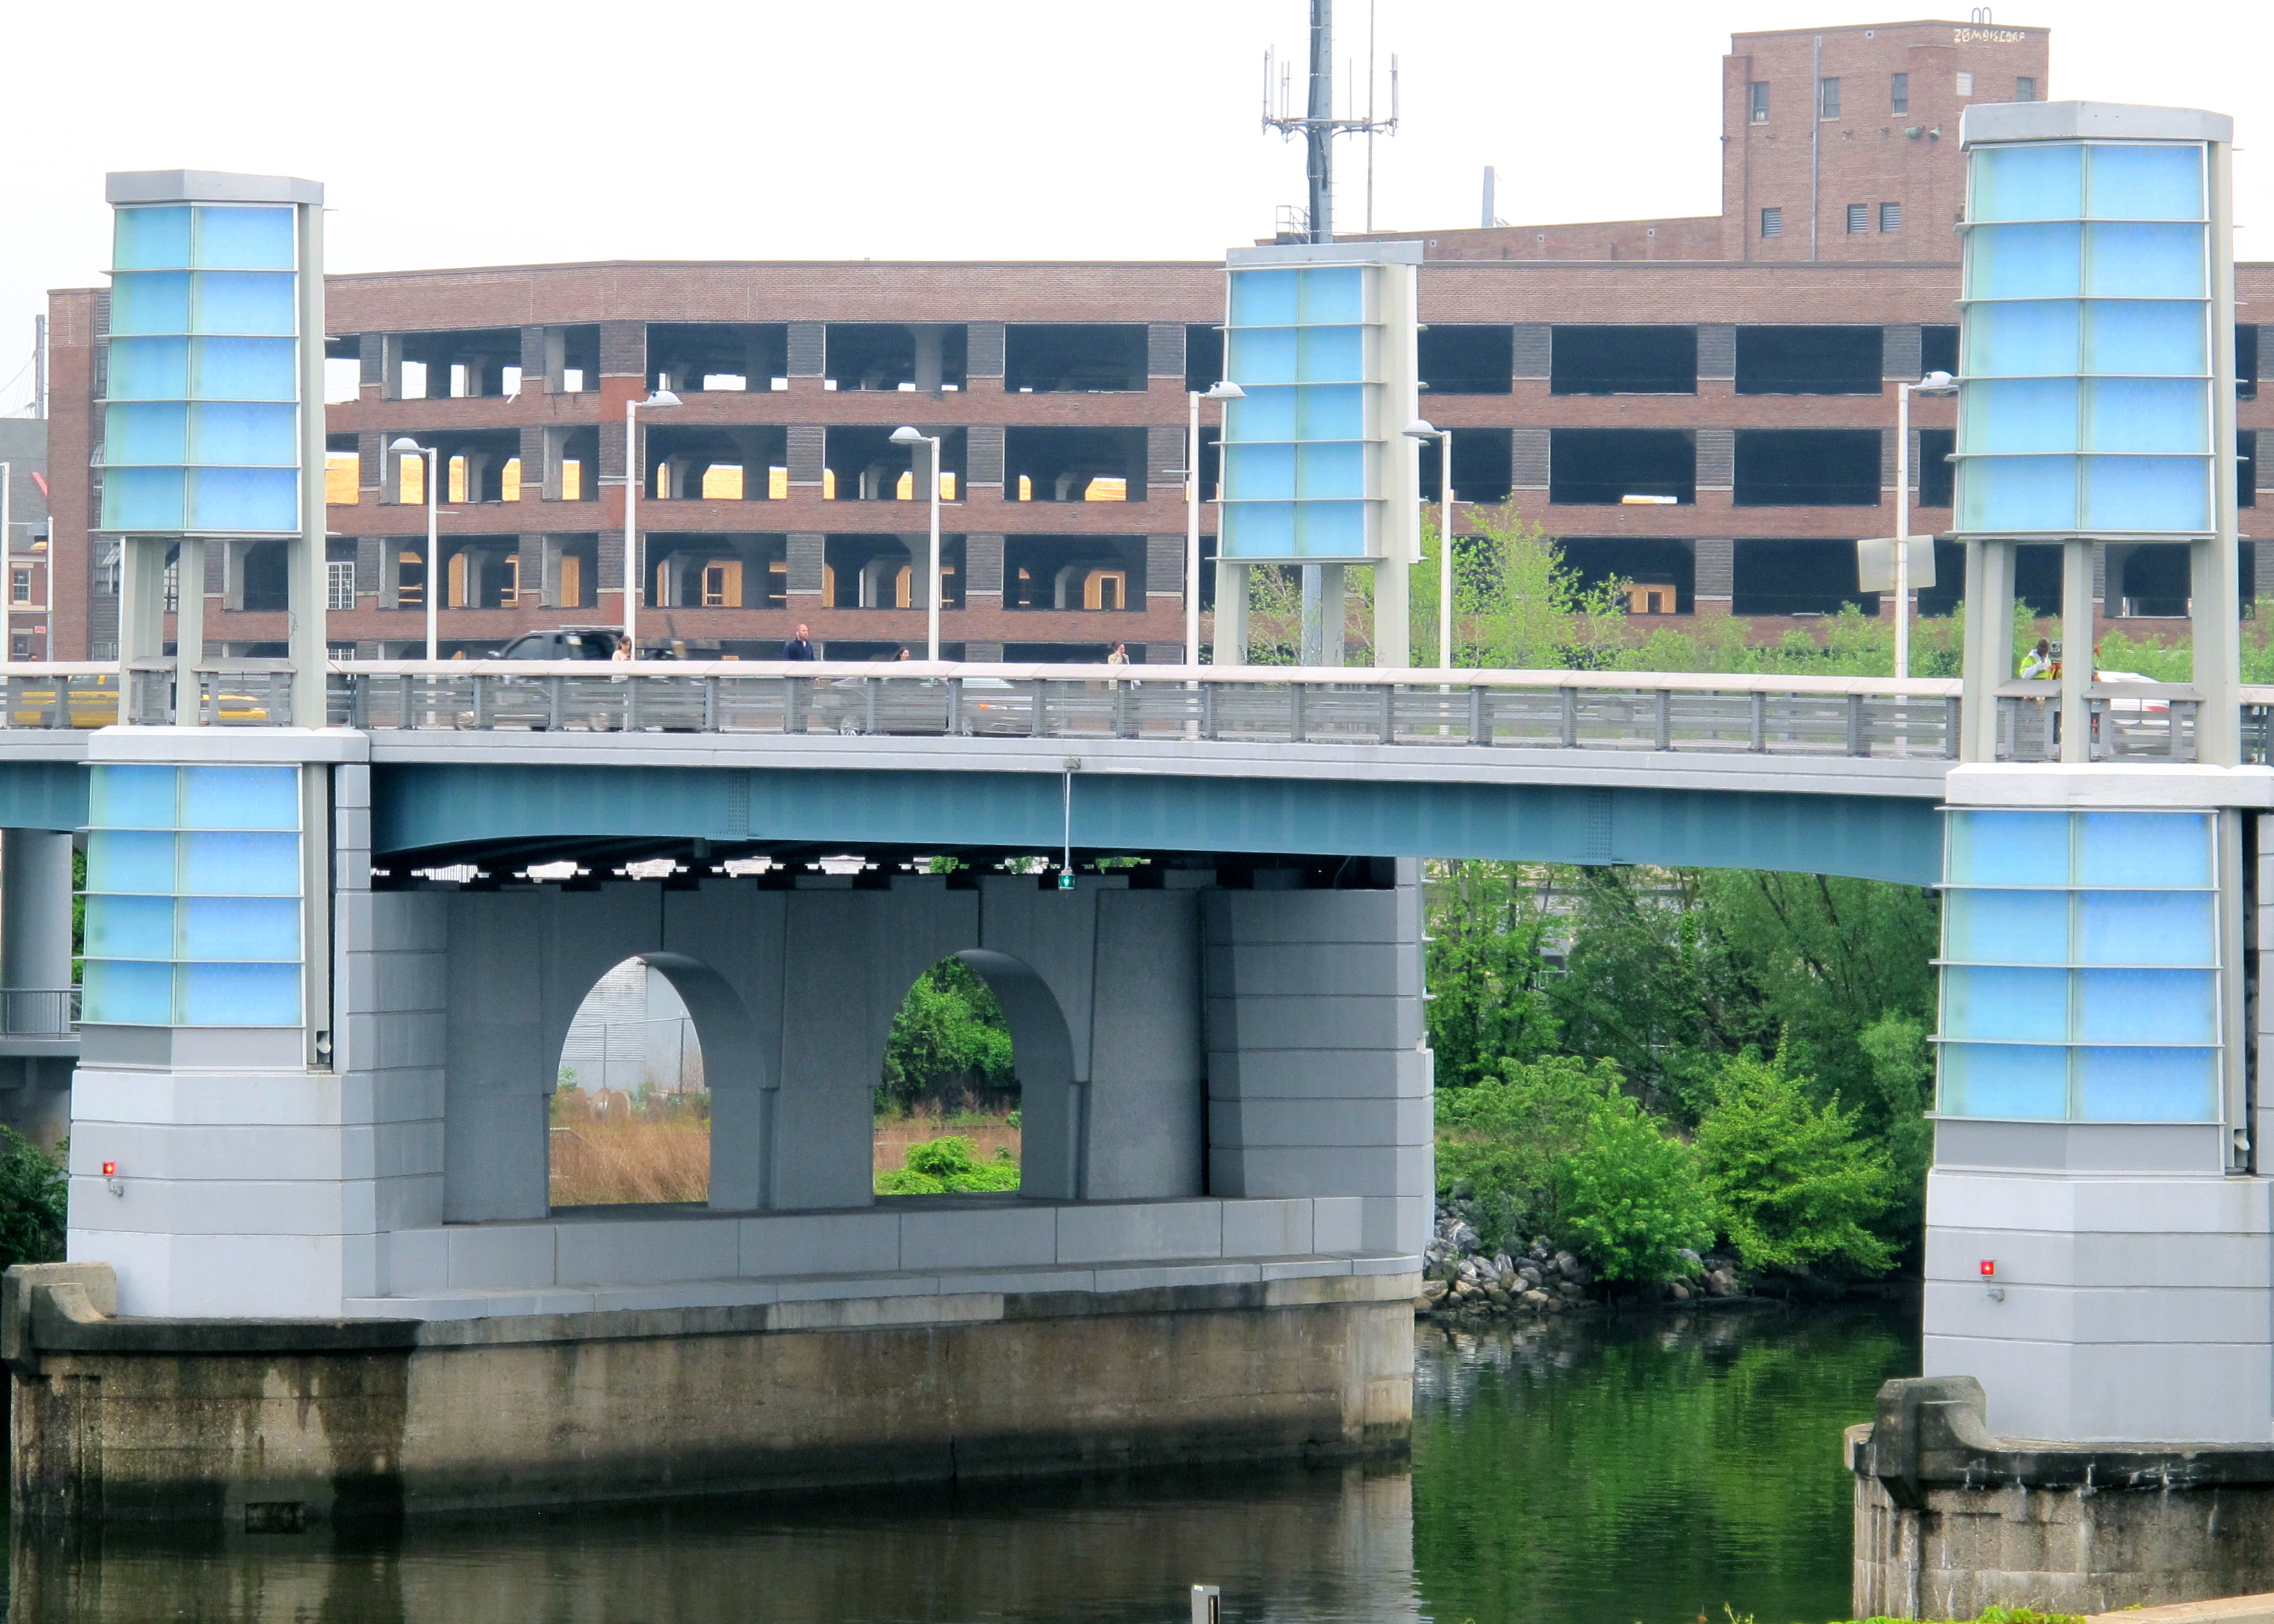 In May the South Street Bridge's new LED lights were tested, and on Monday the towers will finally be lit.